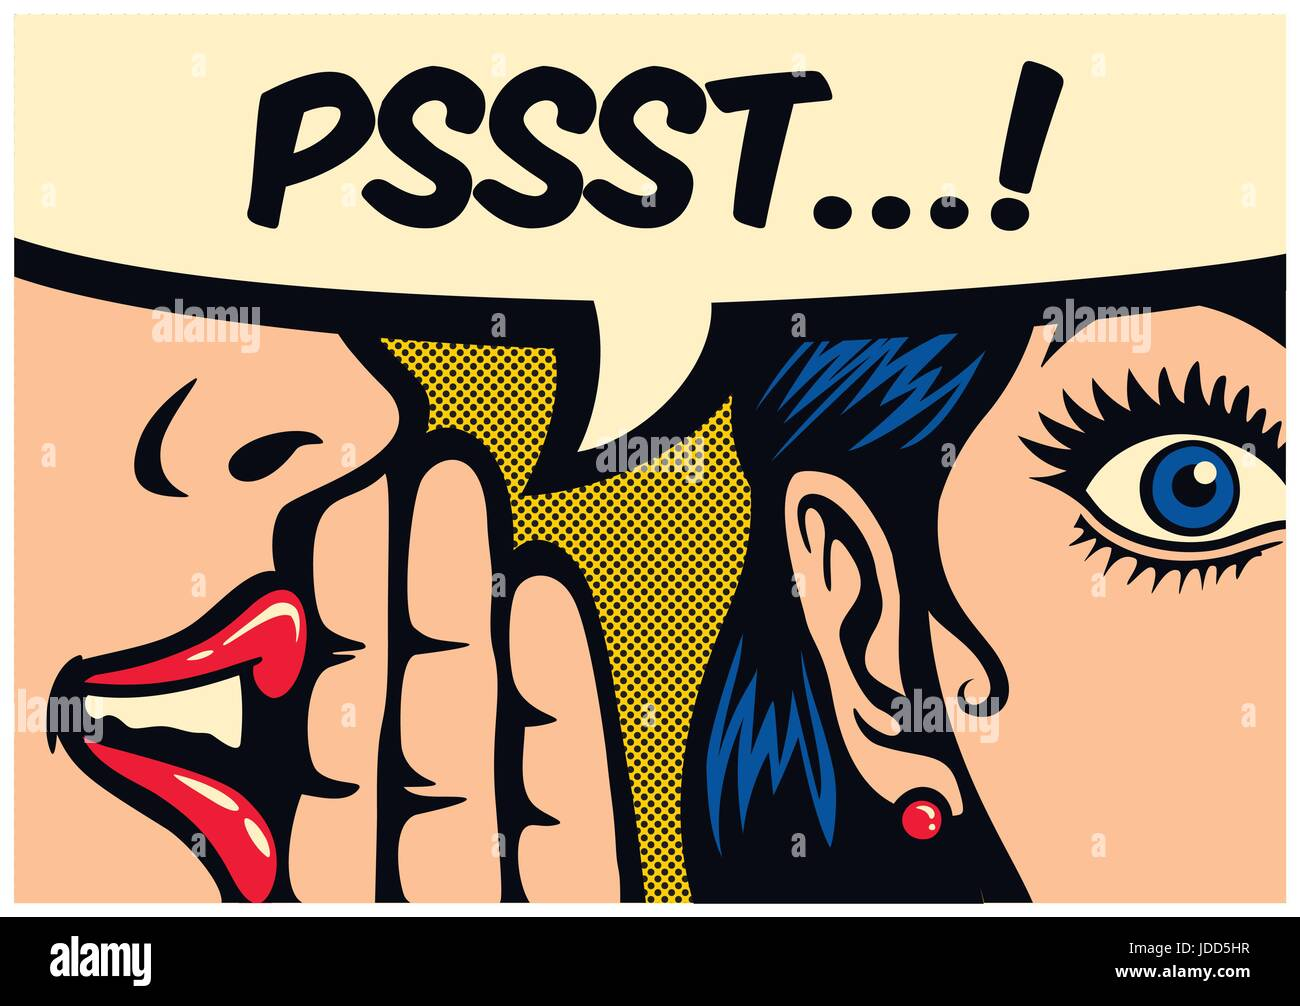 Pop Art style comic book panel gossip girl whispering in ear secrets with speech bubble, rumor, word-of-mouth concept - Stock Image